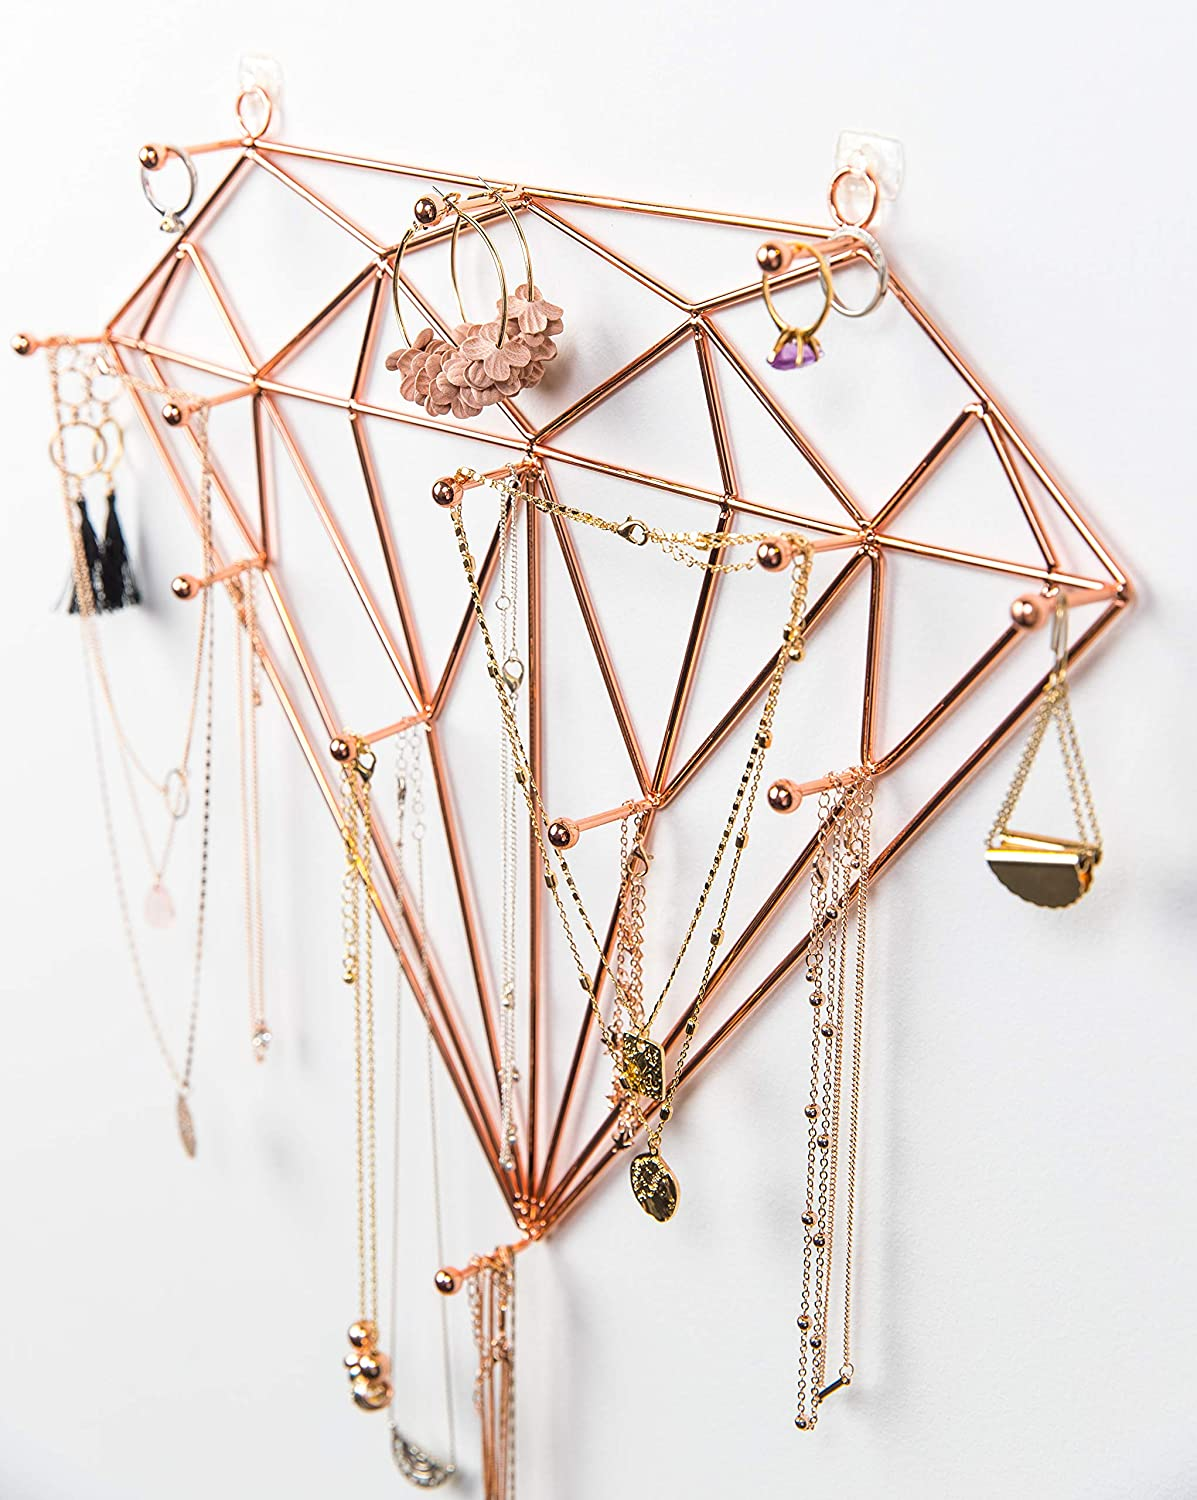 Ruby Mae Jewelry Wall Organizer | Diamond Rose Gold Jewelry Organizer for Necklaces, Bracelets, Earrings, Rings | Necklace Organizer with Large Jewelry Hooks | Hanging Jewelry Organizer Wall Mounted